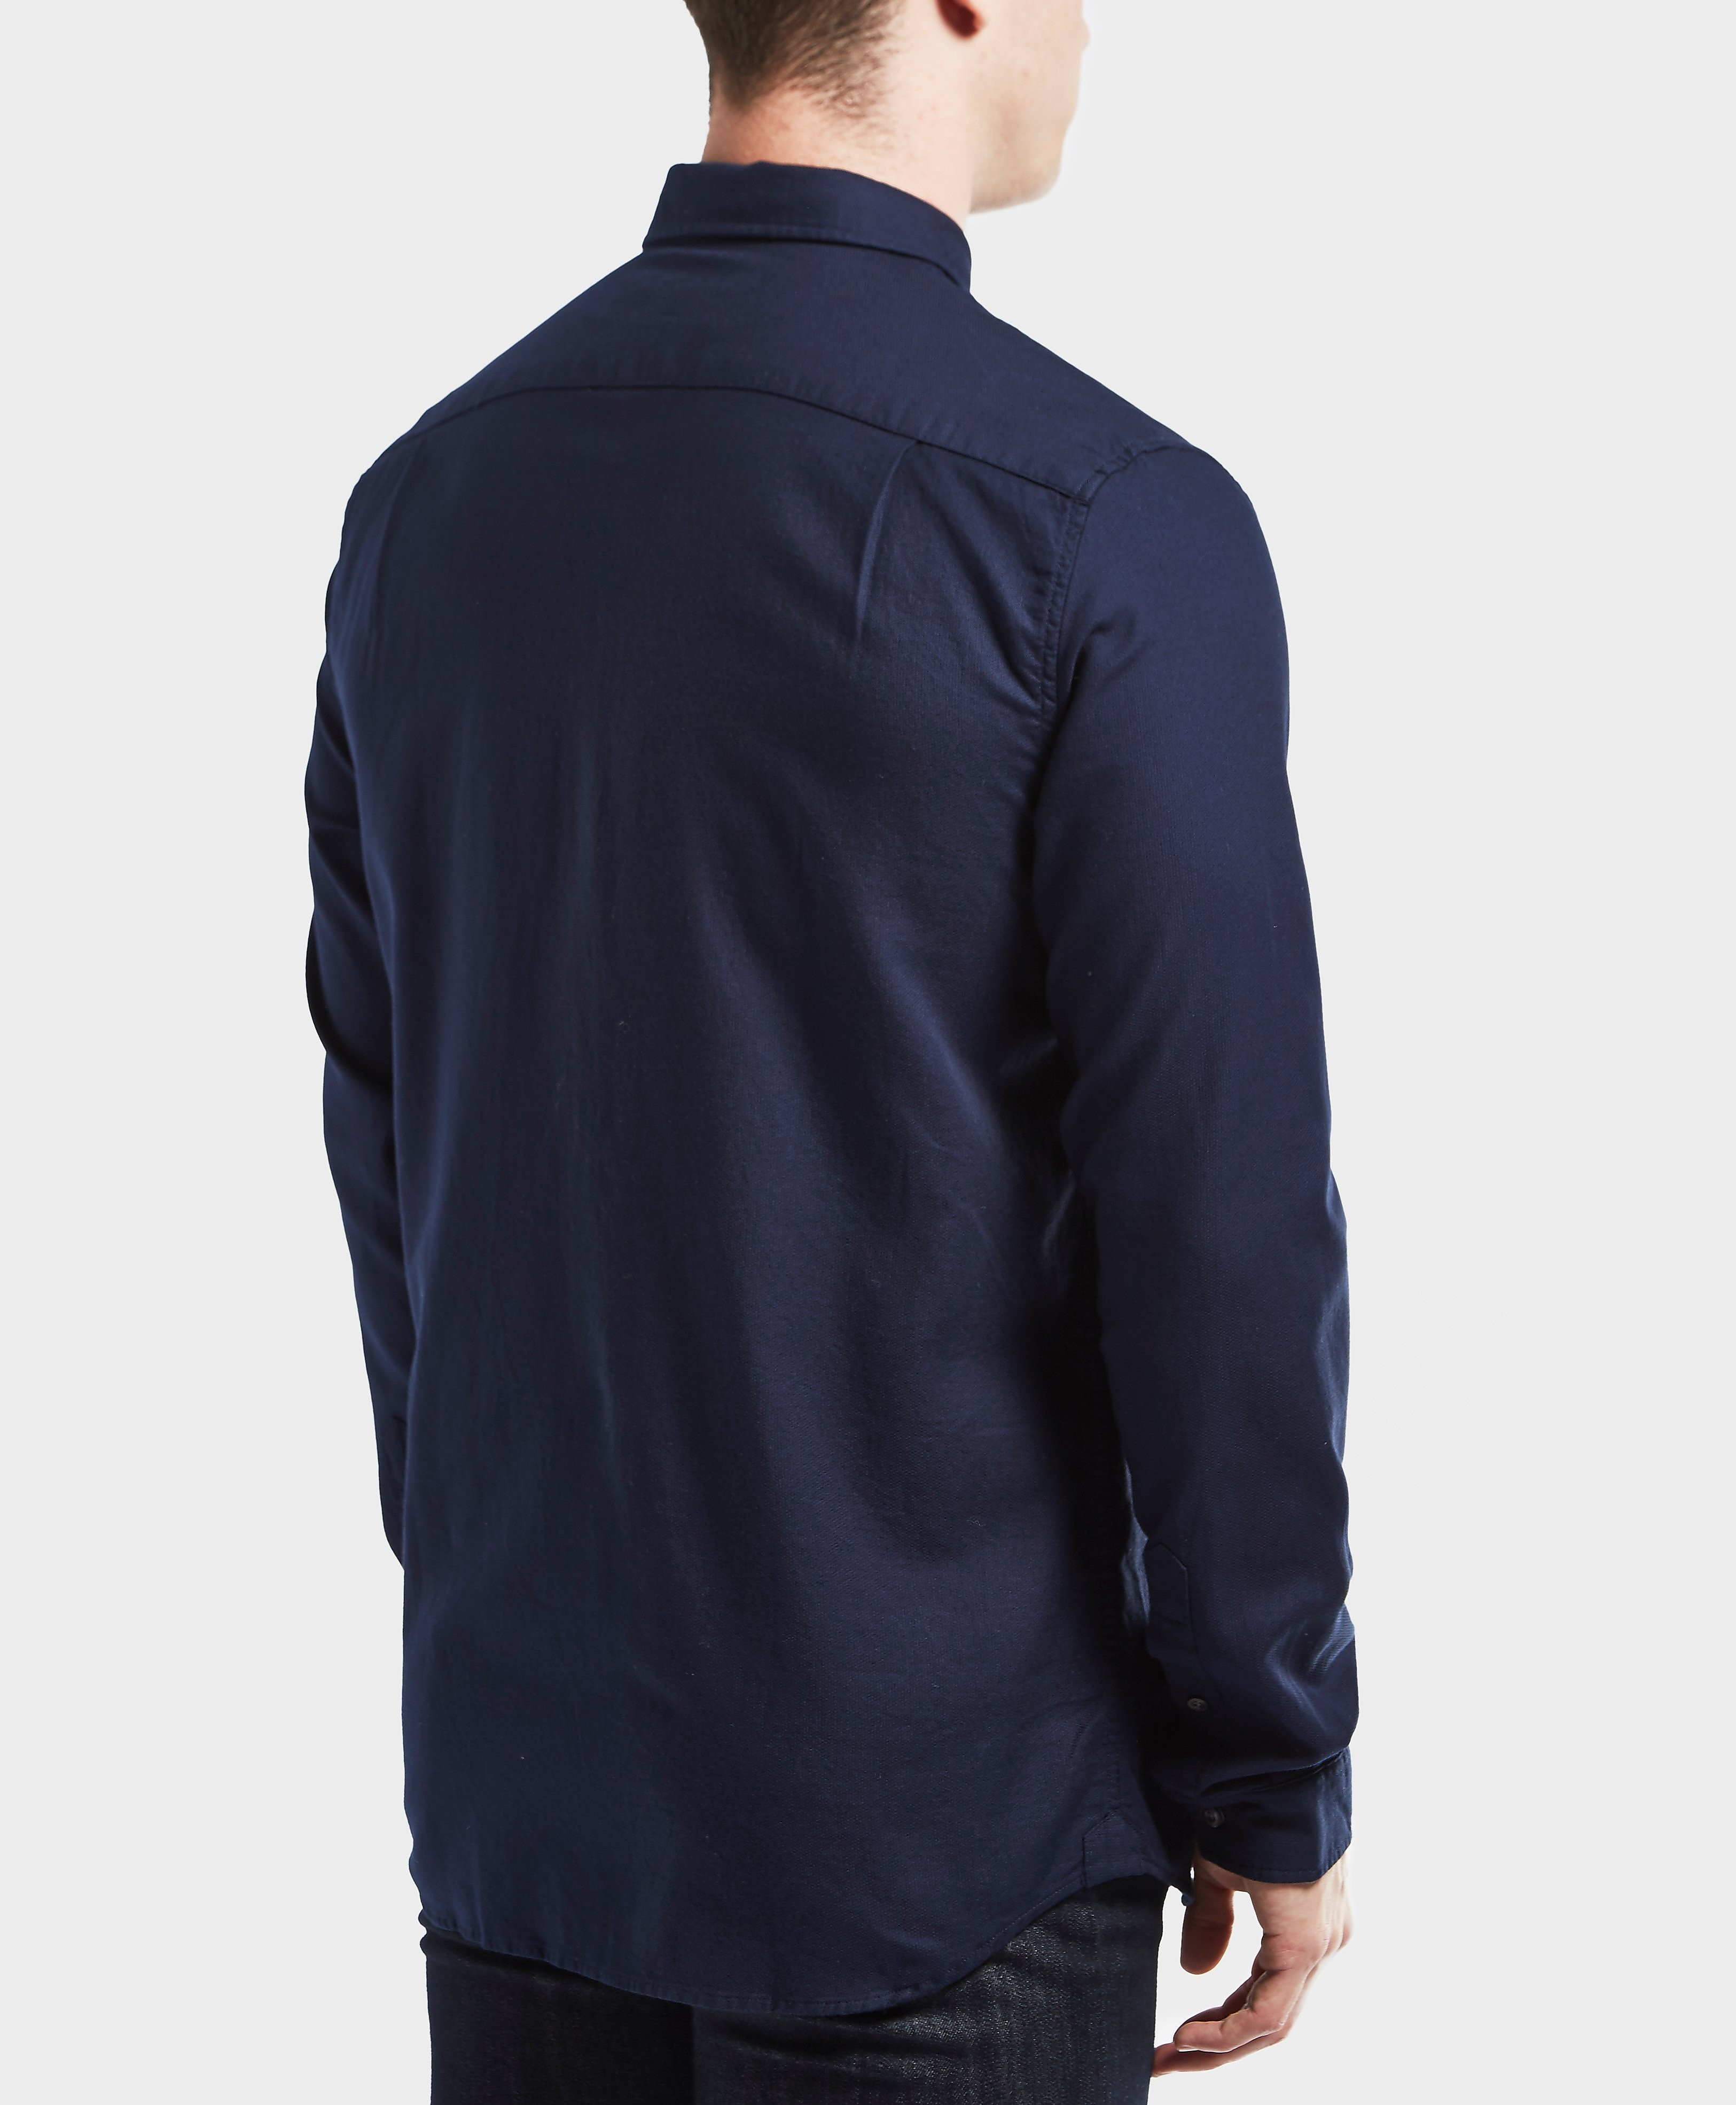 Lacoste Textured Long Sleeve Shirt